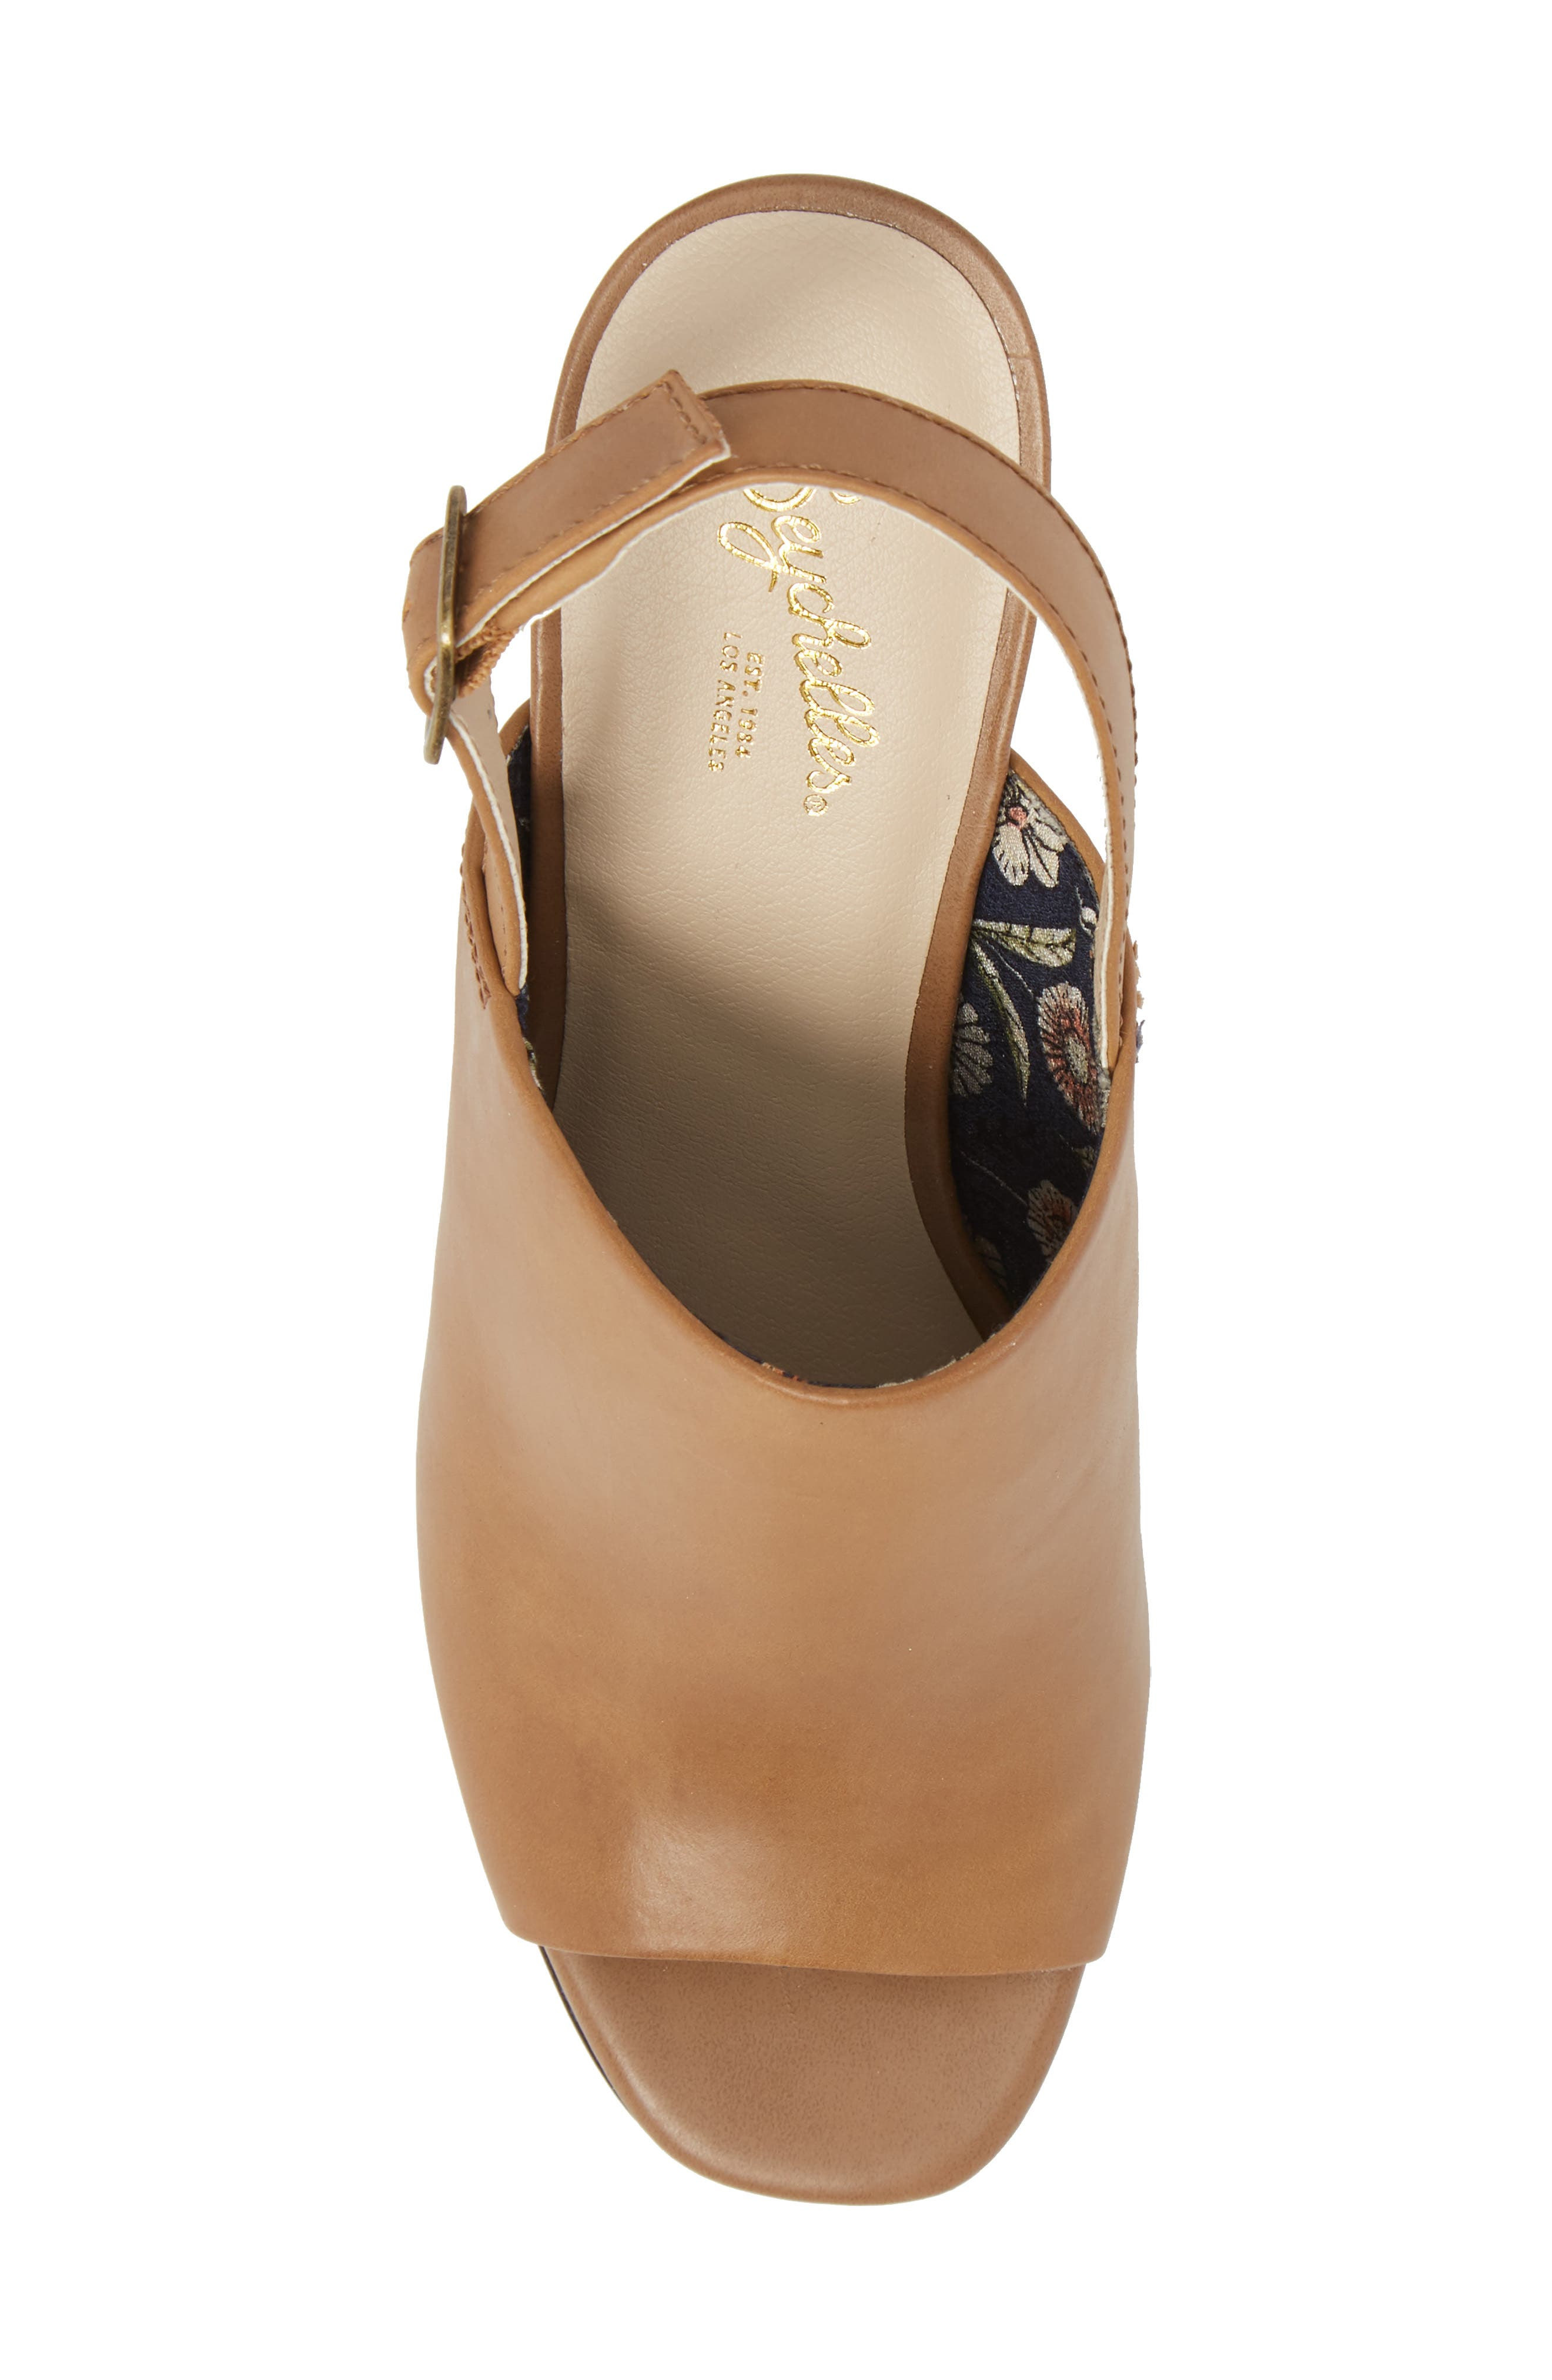 Abyssal Wedge Sandal,                             Alternate thumbnail 5, color,                             TAN LEATHER